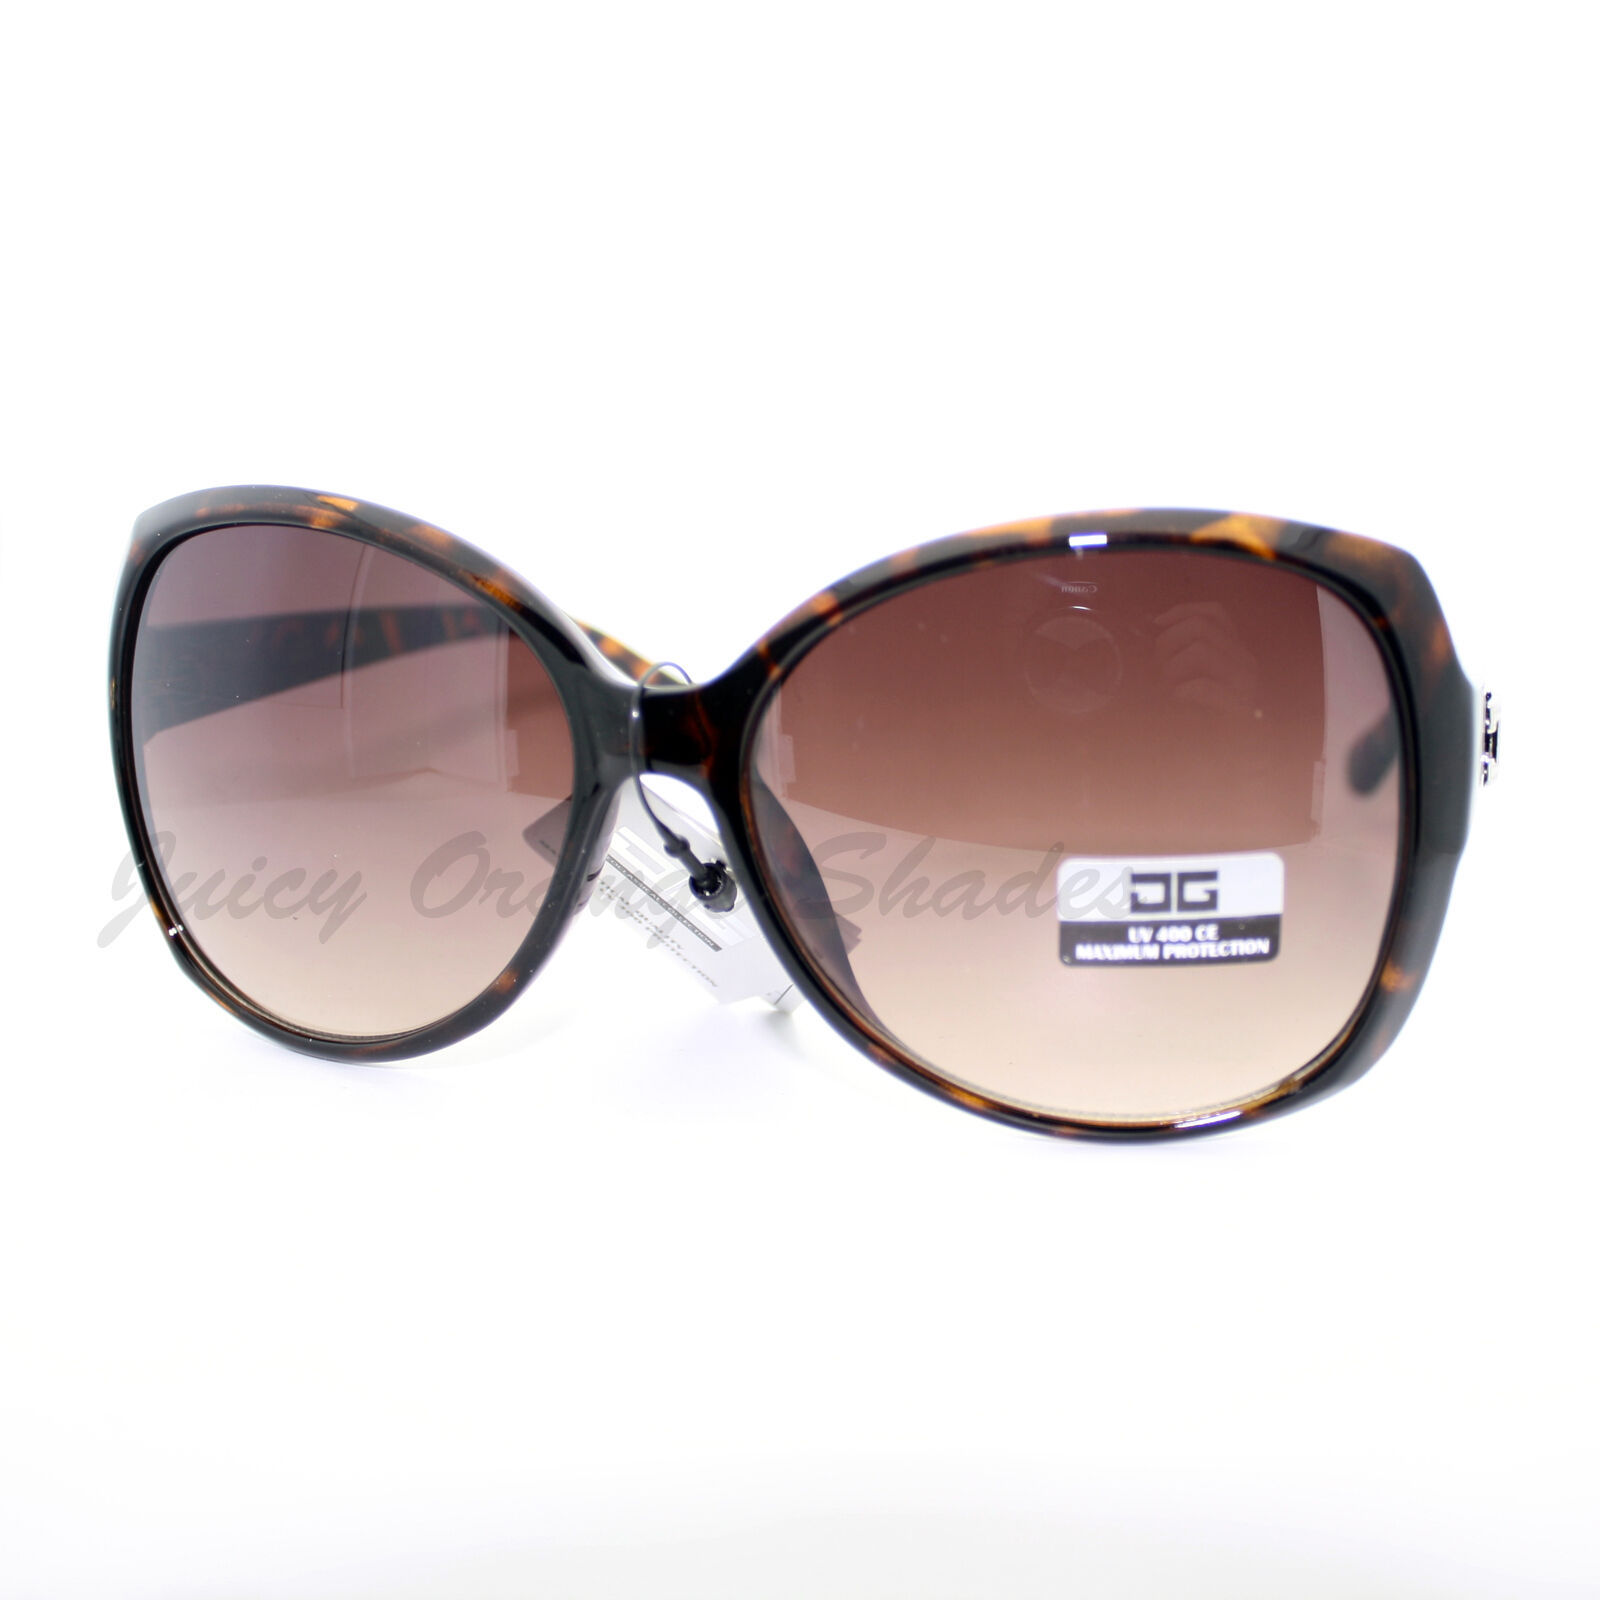 Designer Fashion Womens Sunglasses Oversize Round Butterfly Frame